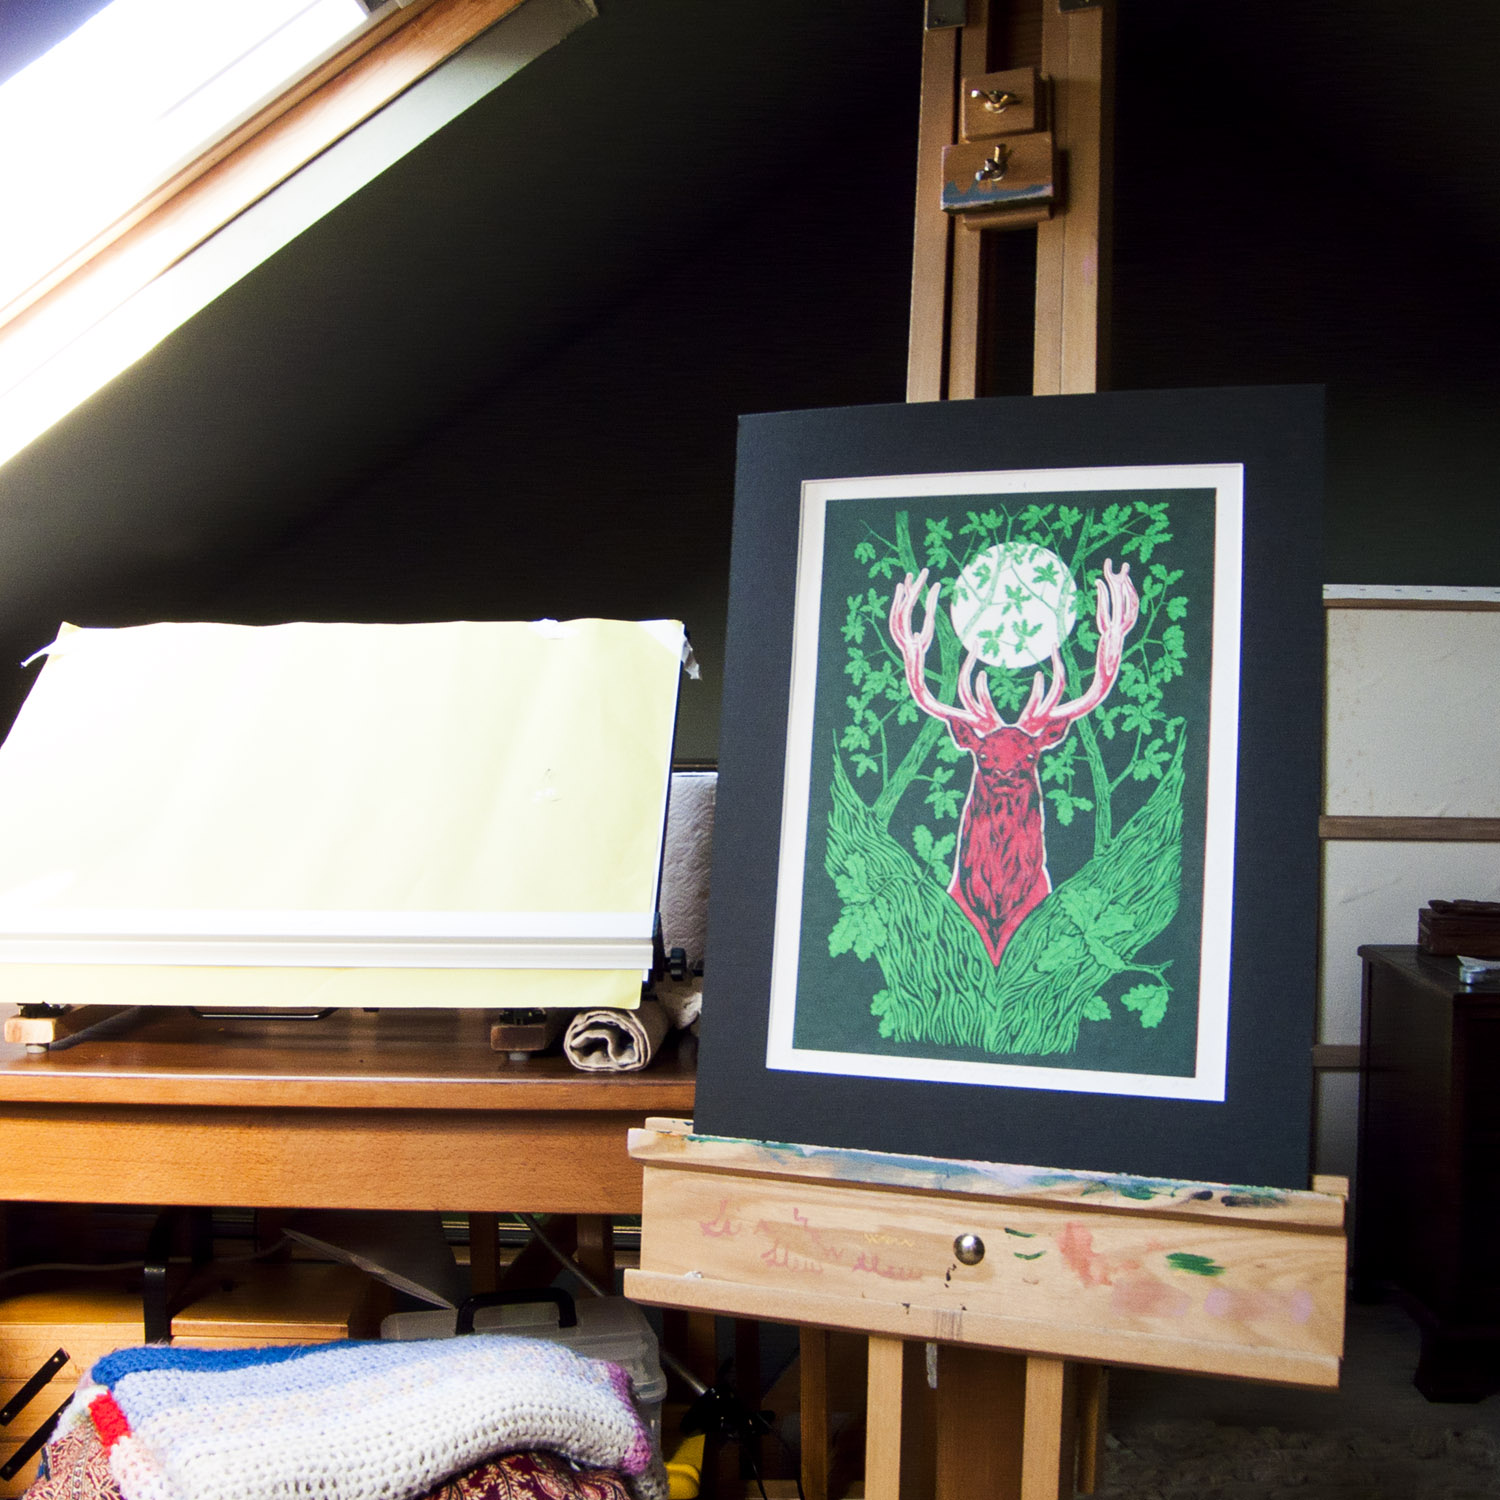 Green Fuse donated screenprint for auction